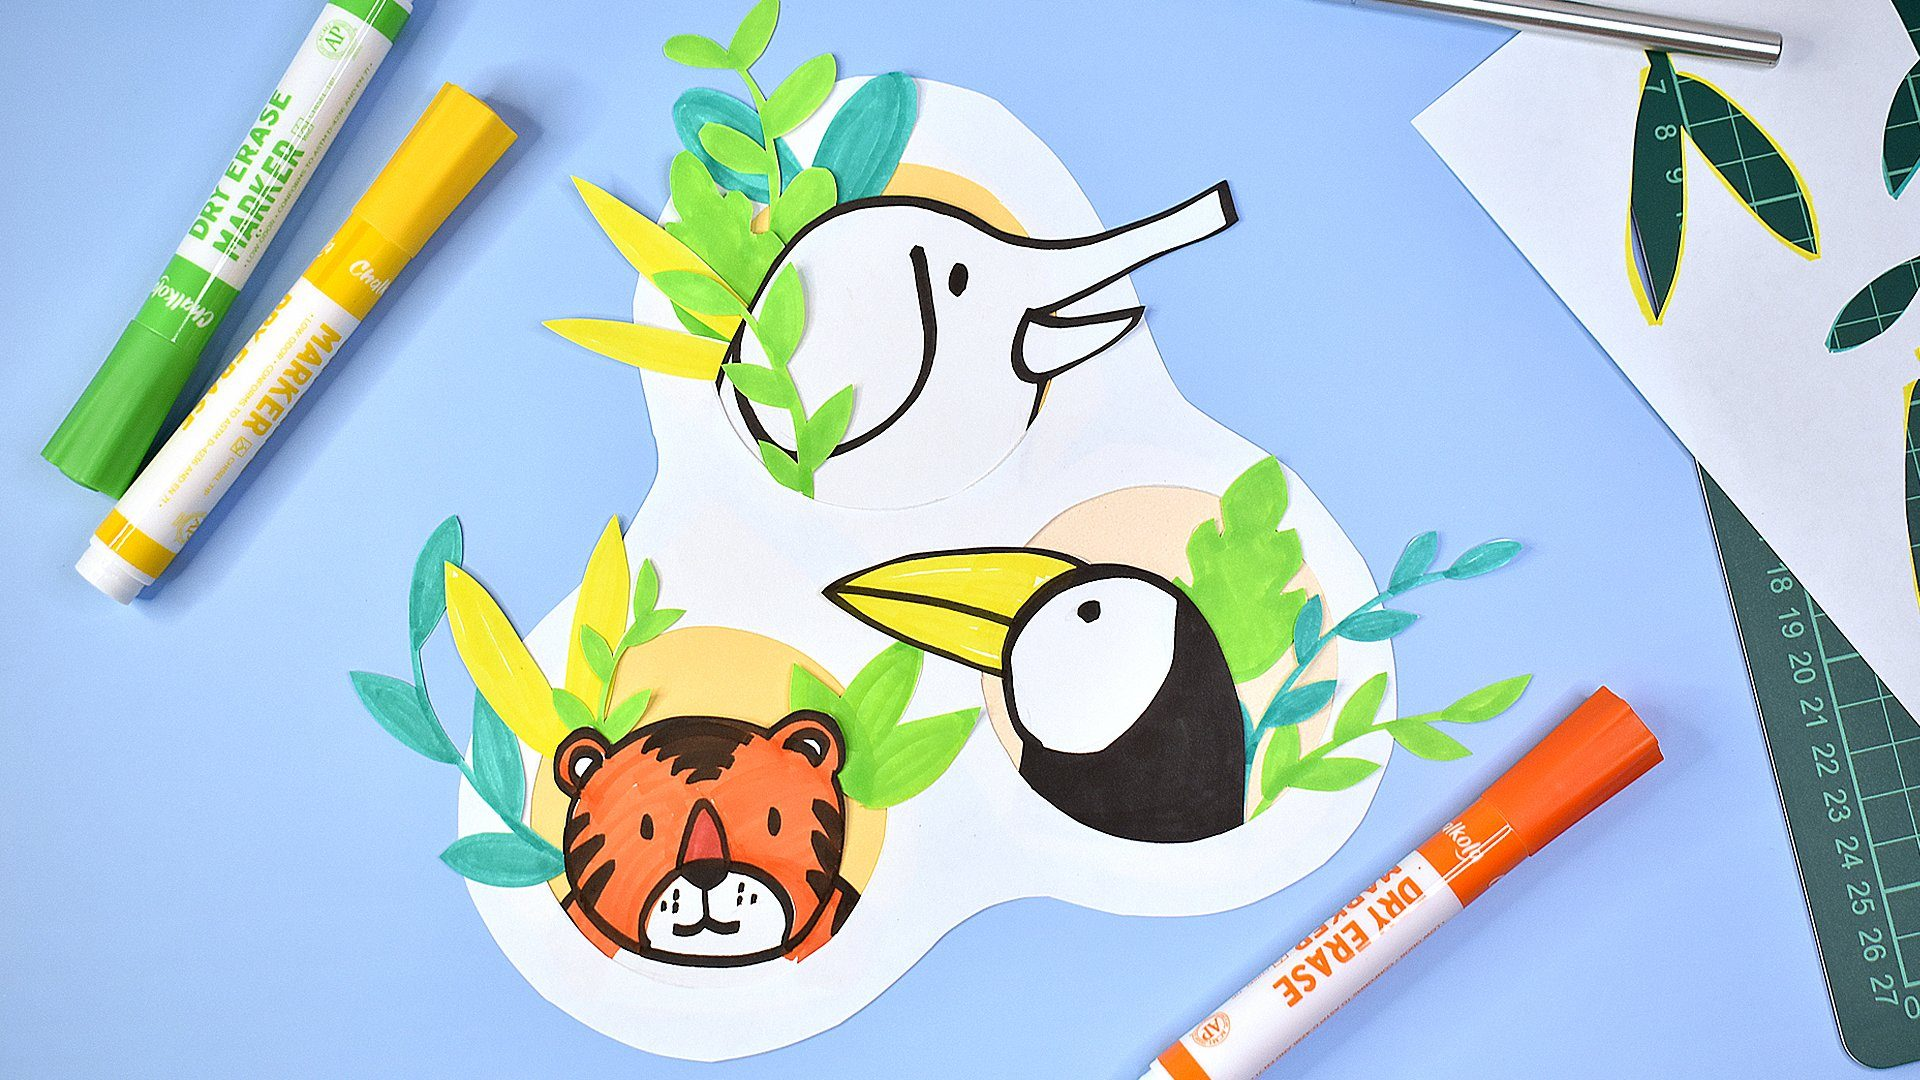 ARTIVITY: DIY Animal Cutouts with Dry Erase Markers